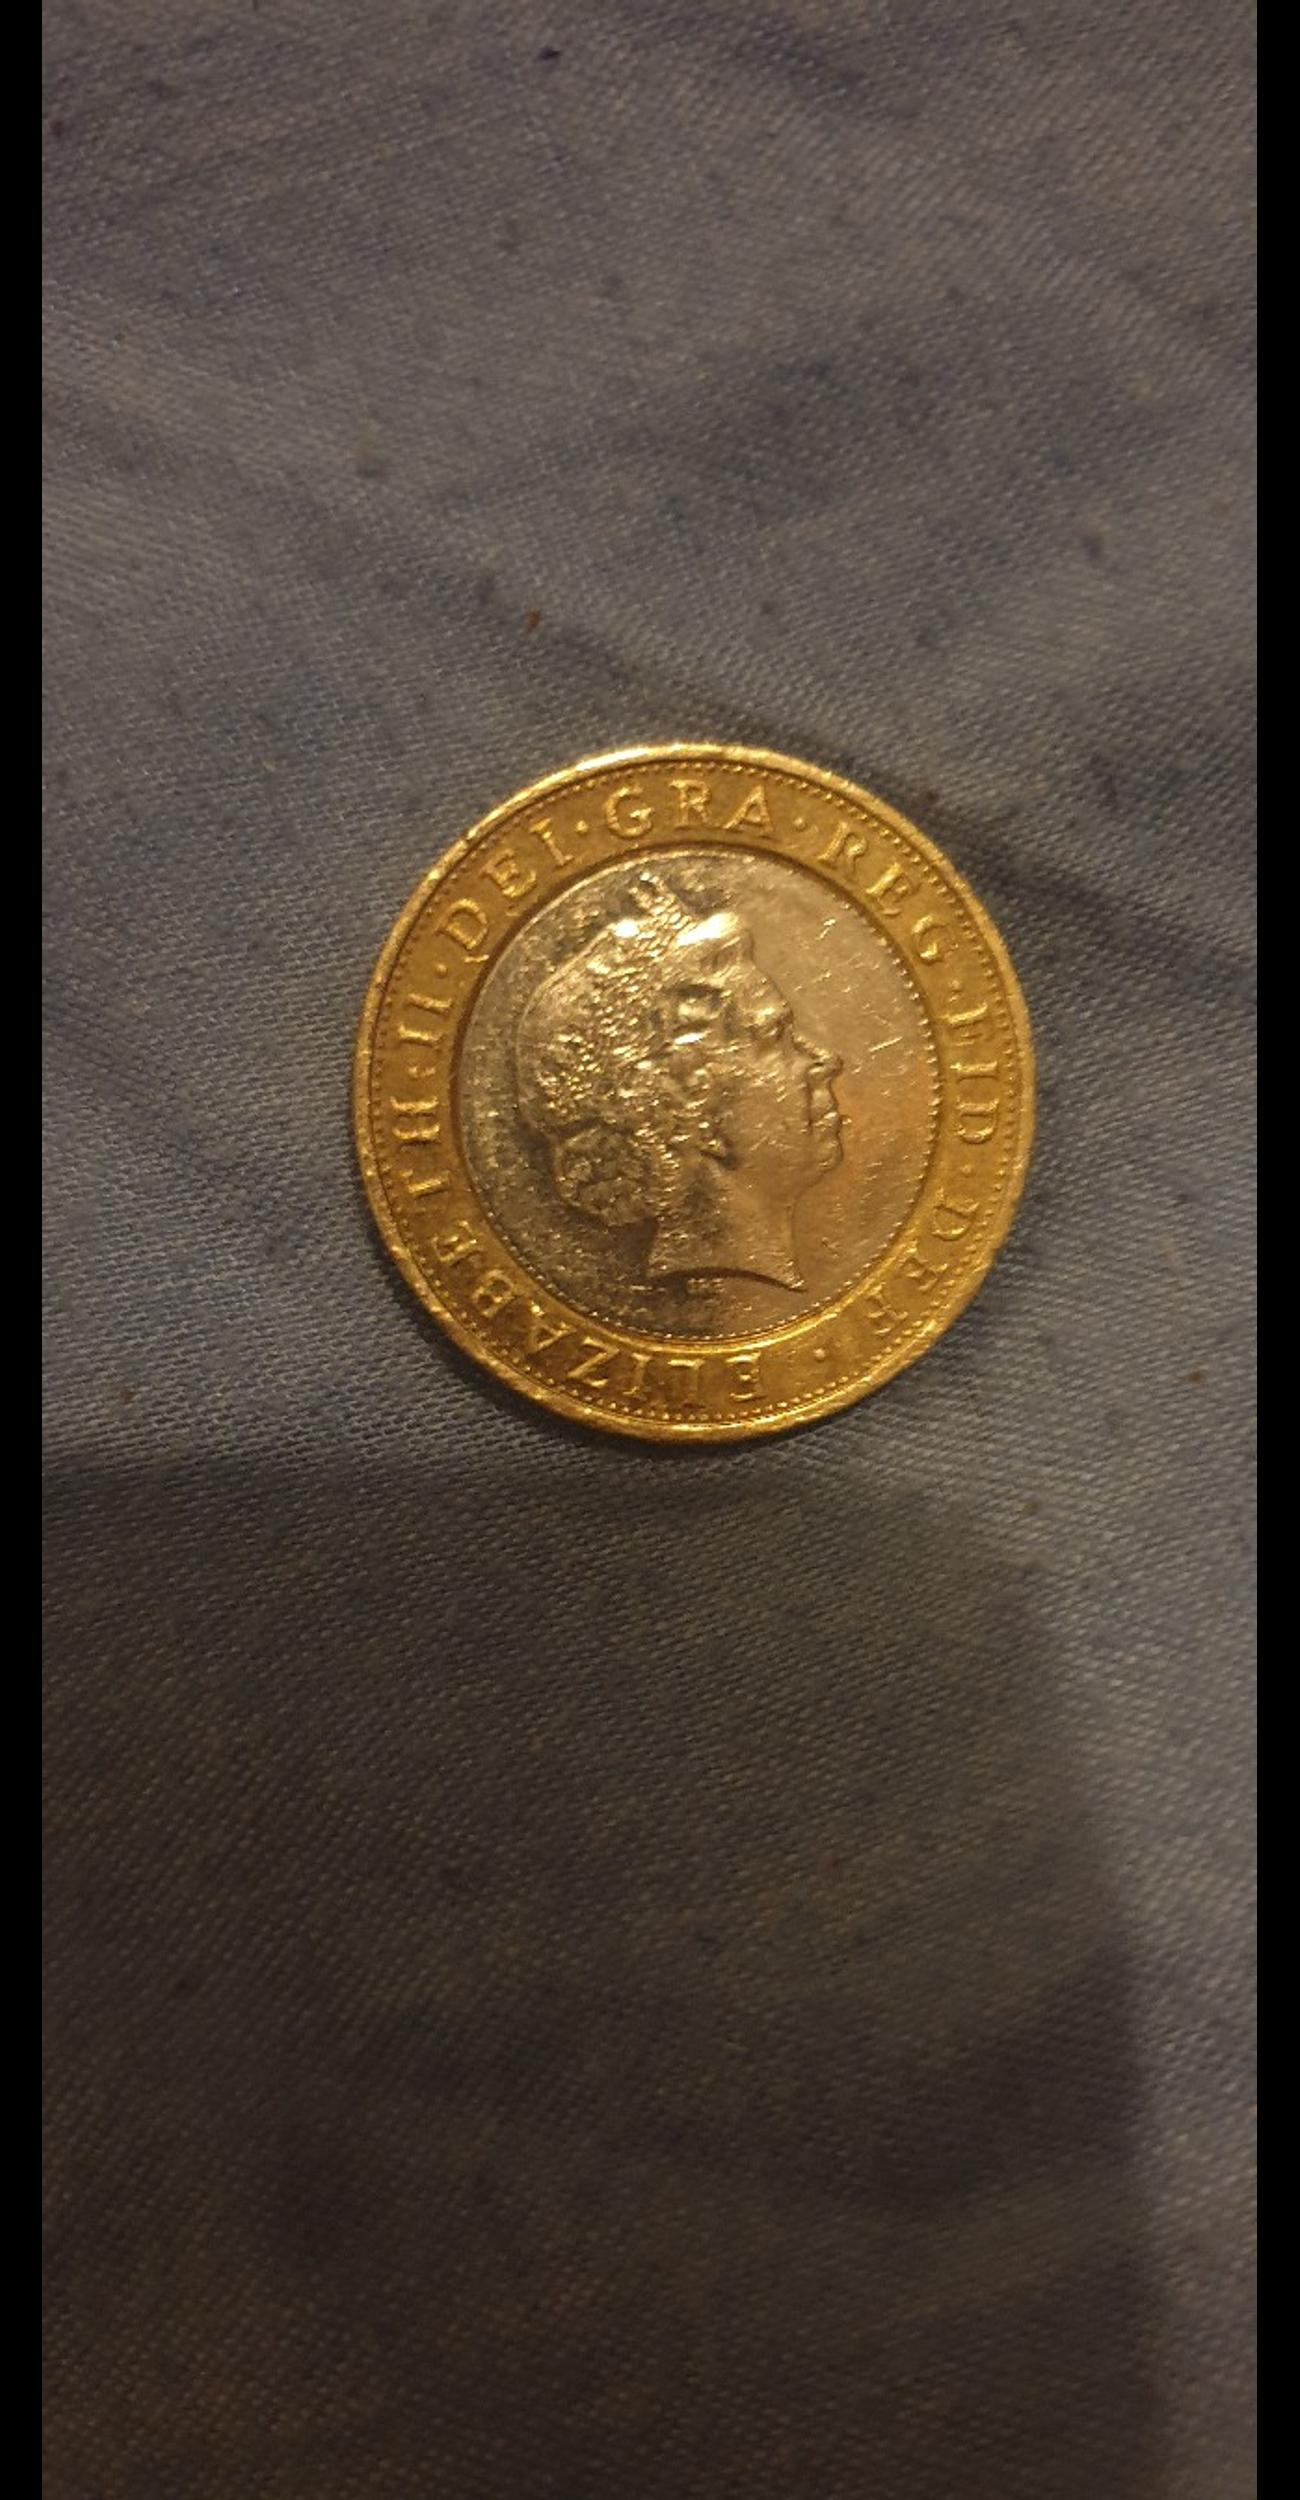 Ultra Rare Minting Error 2 Pound Coin